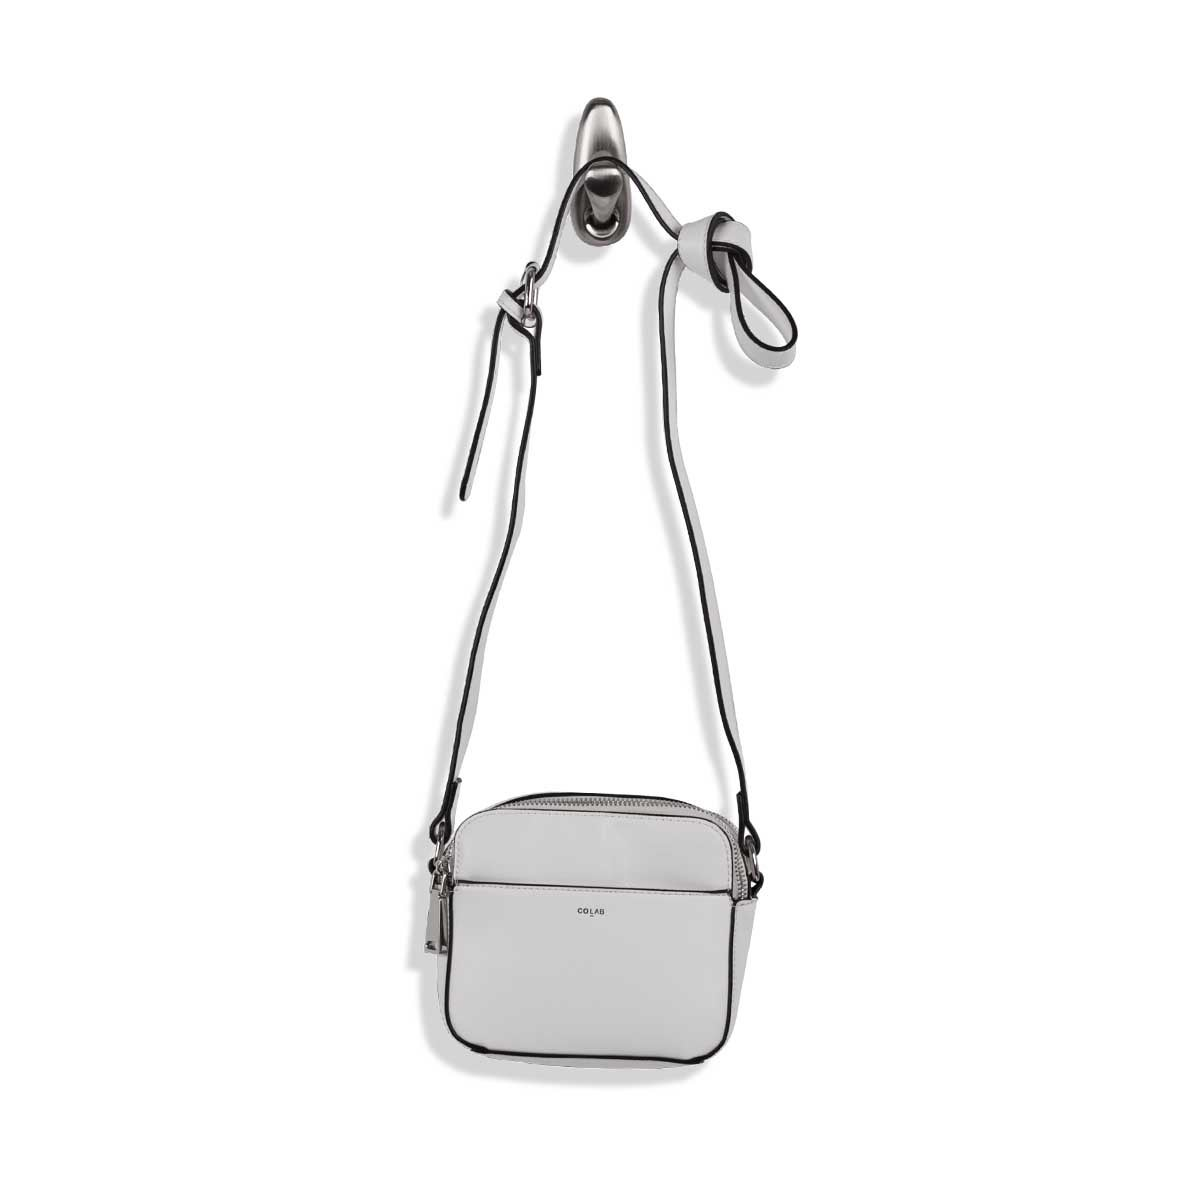 Lds MALIBU Camera wht crossbody bag